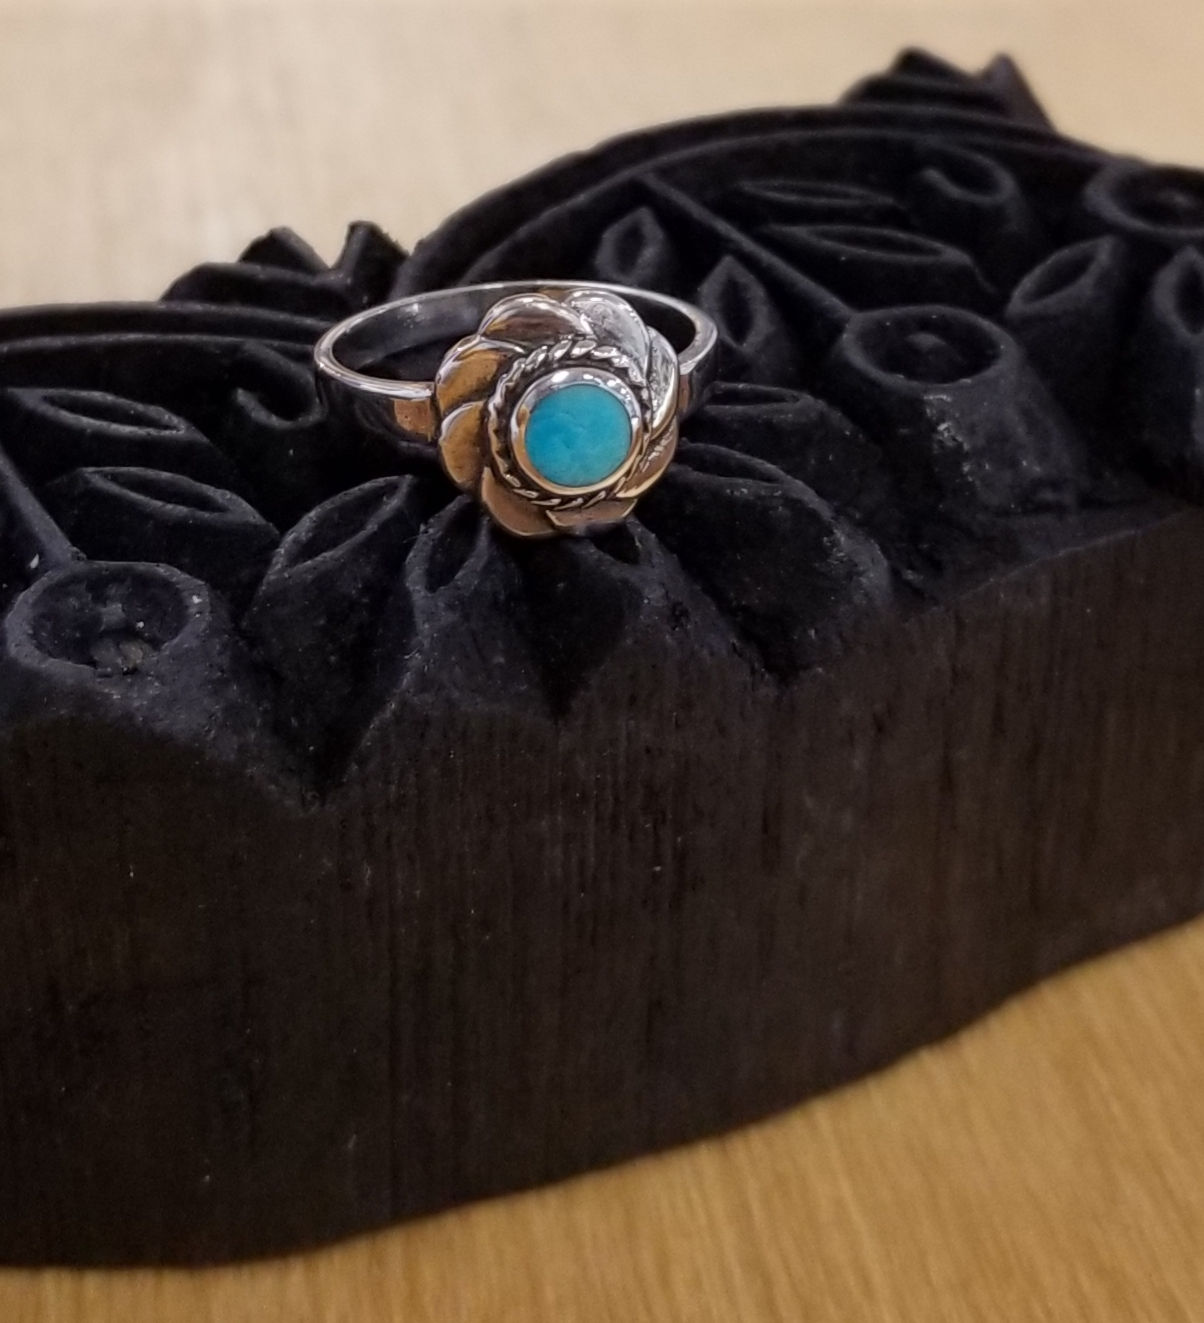 sterling silver flower ring with turquoise center